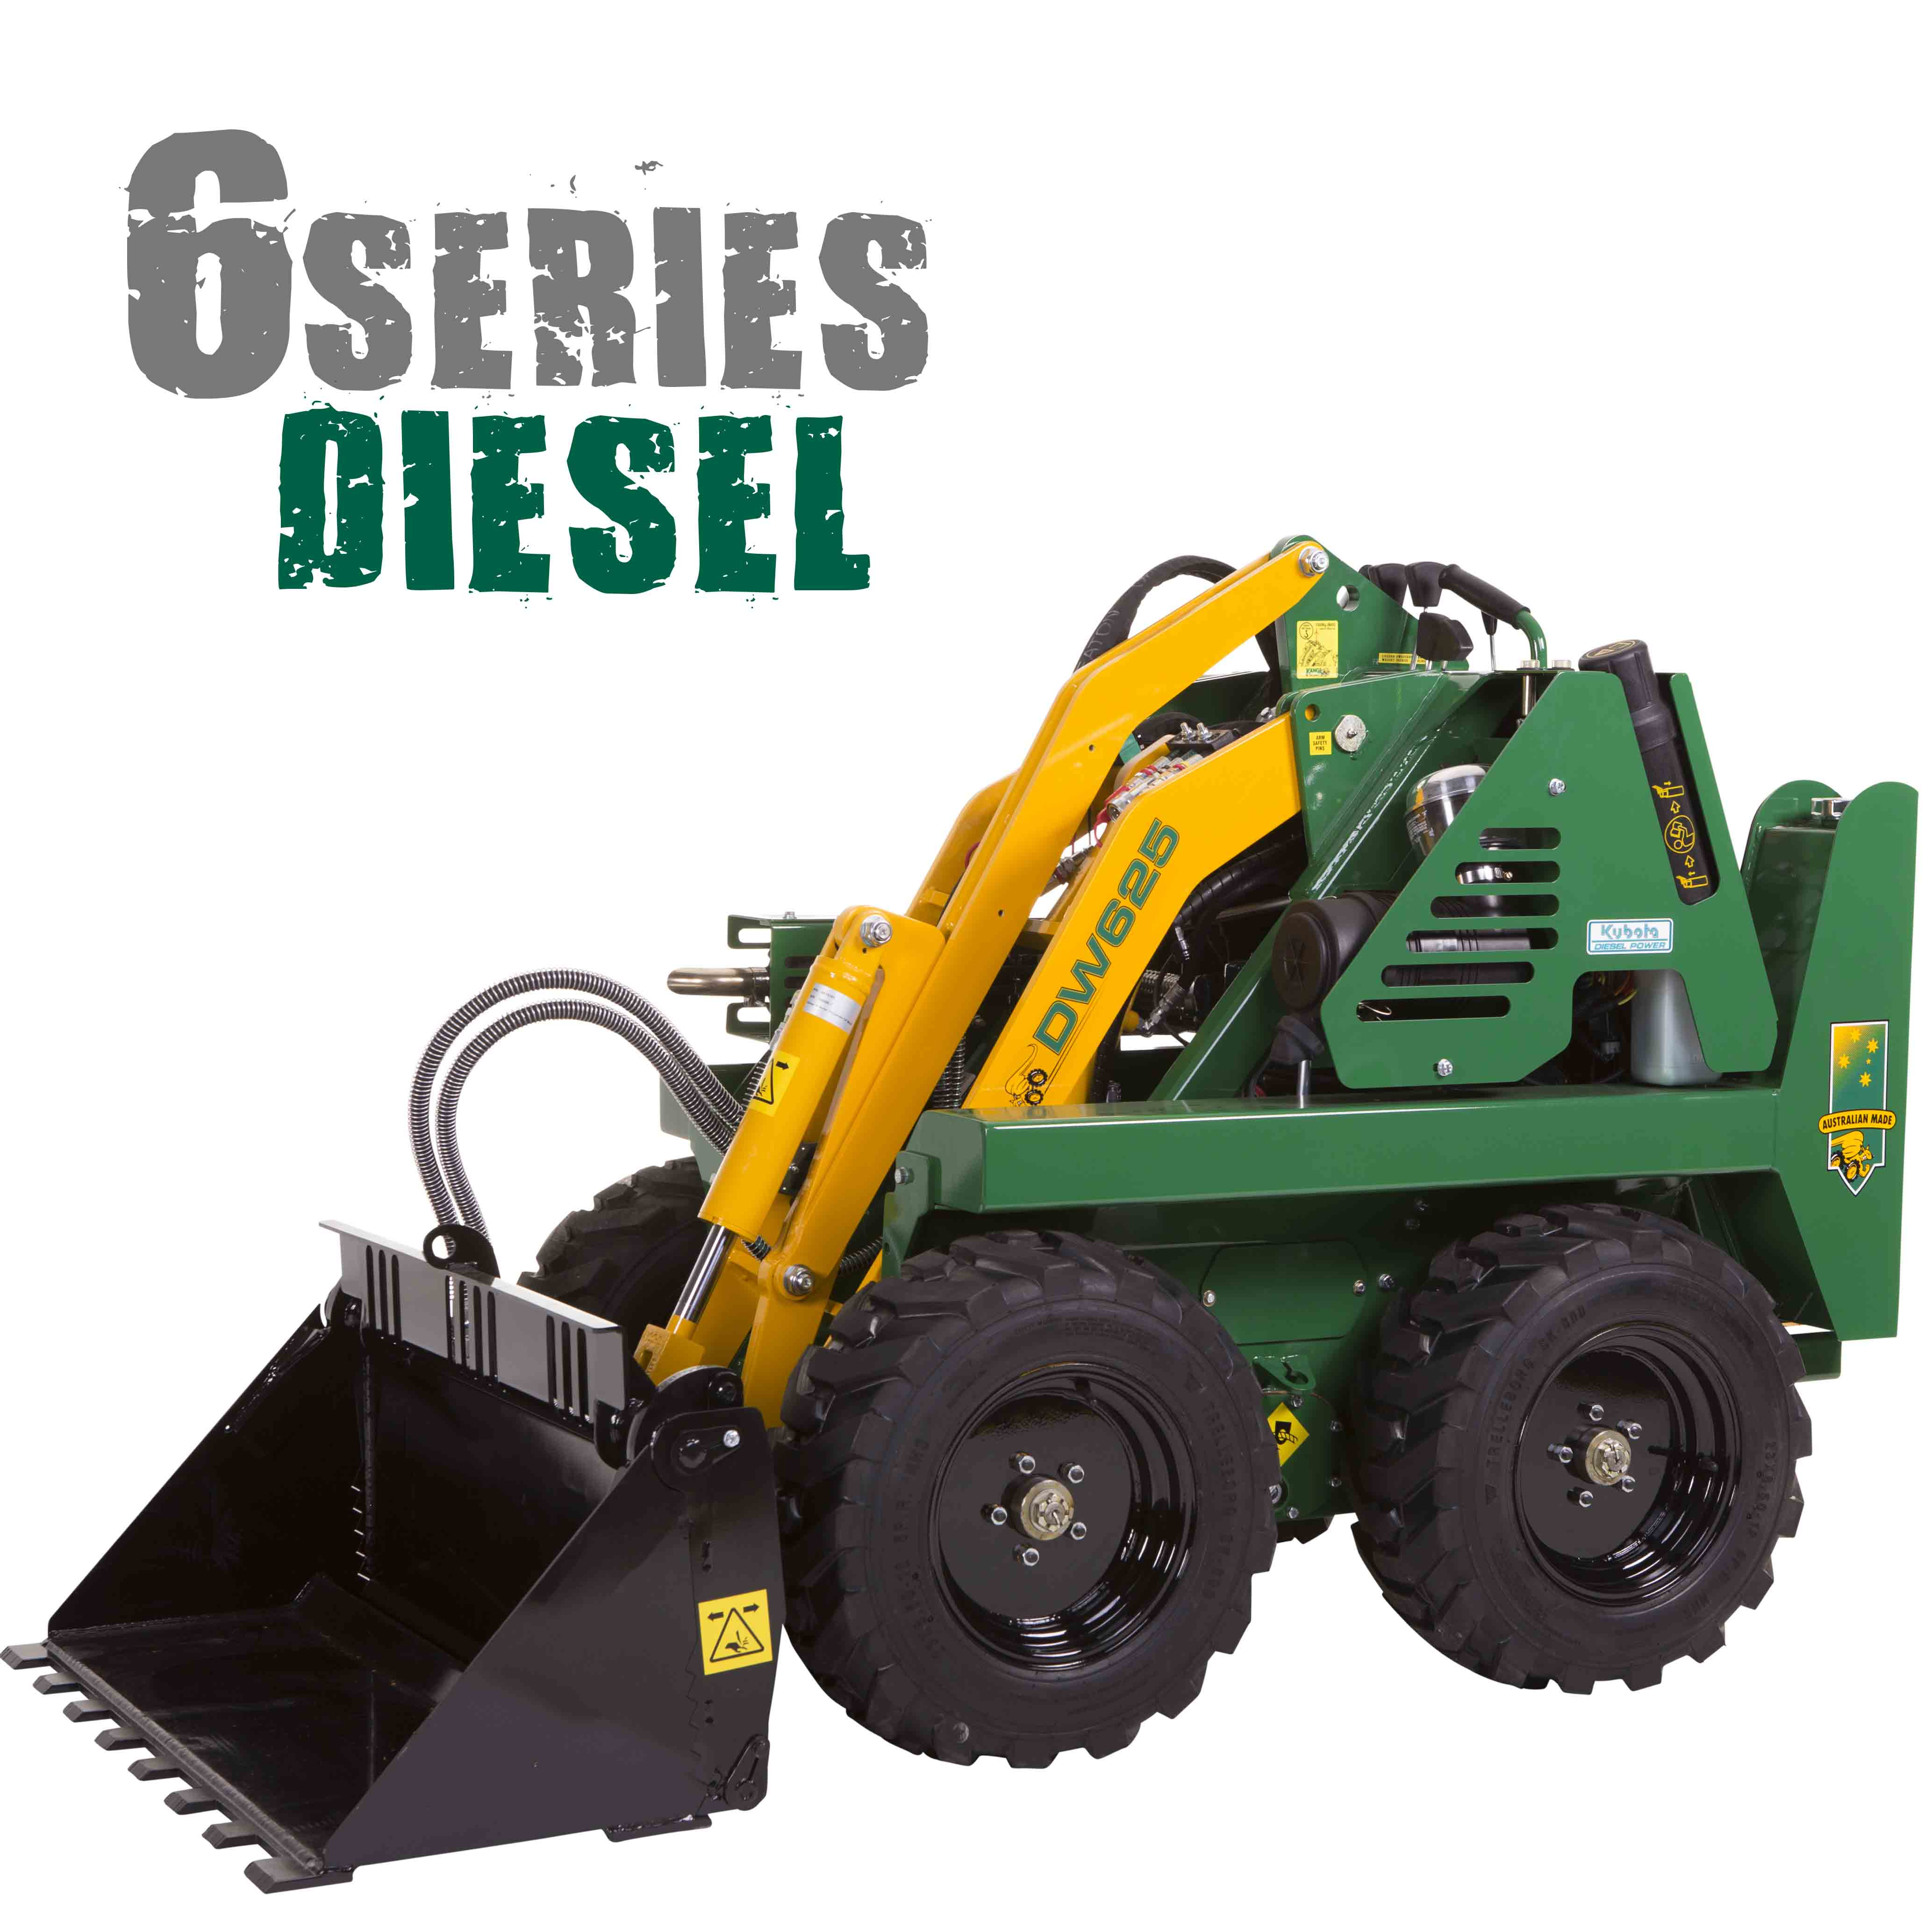 6 SERIES DIESEL1 kanga loaders 6 series midi diesel kanga loader wiring diagram at nearapp.co